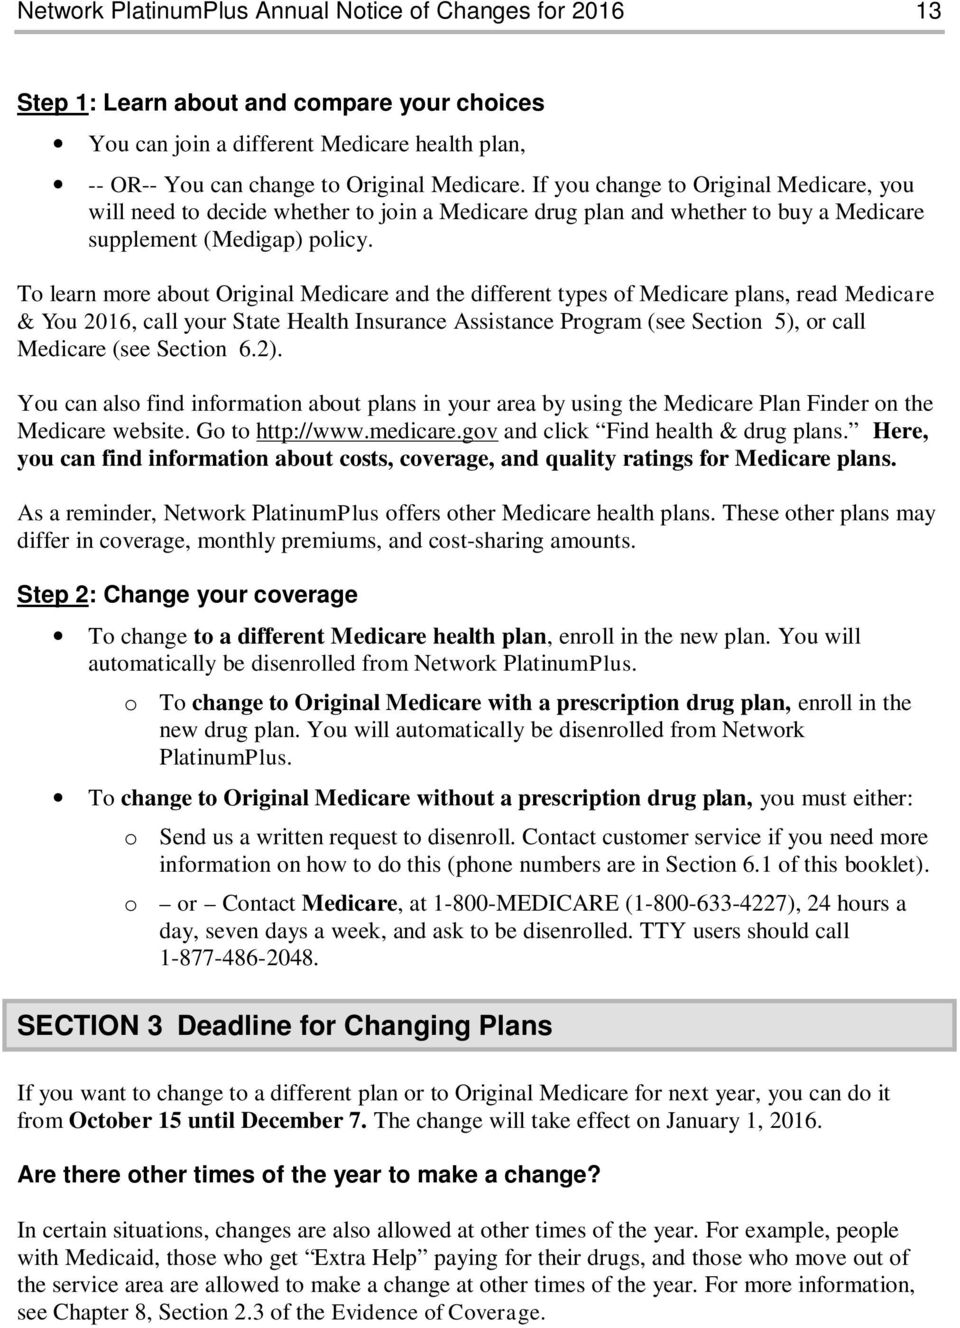 To learn more about Original Medicare and the different types of Medicare plans, read Medicare & You 2016, call your State Health Insurance Assistance Program (see Section 5), or call Medicare (see